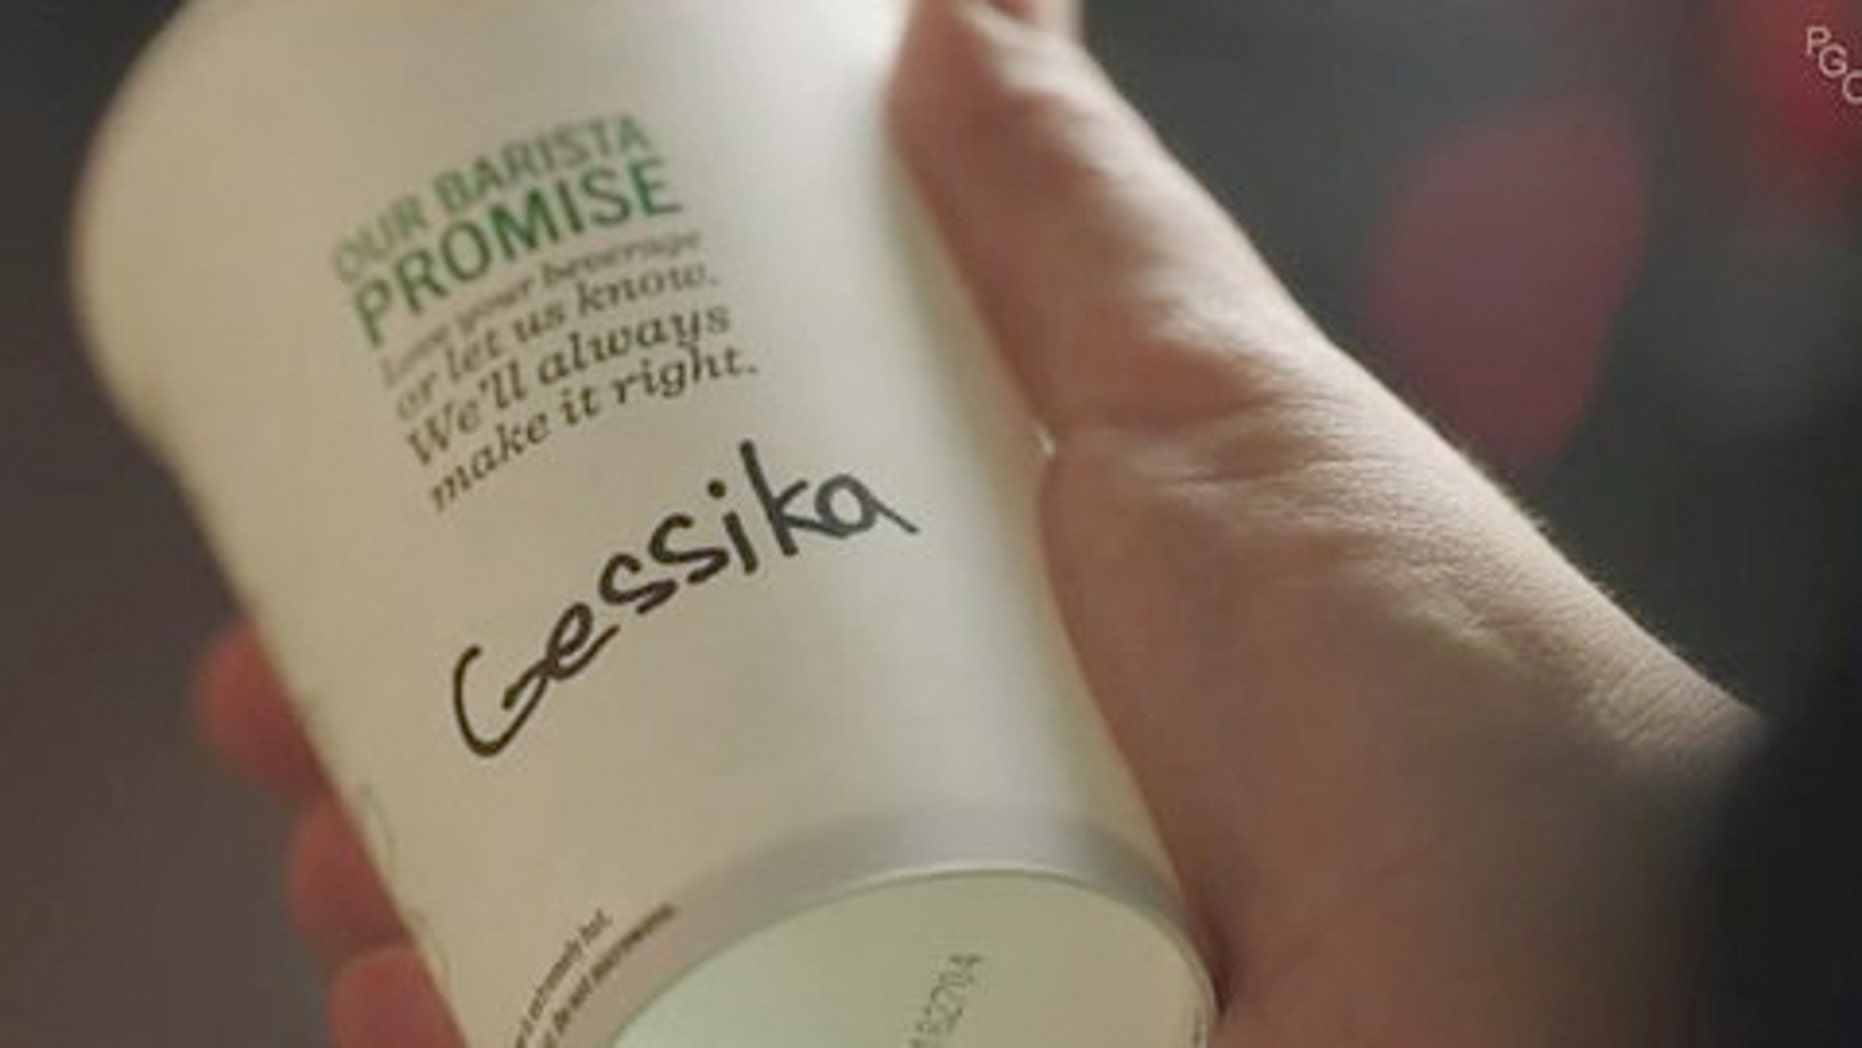 Oh it's Jessica, not Gessika!